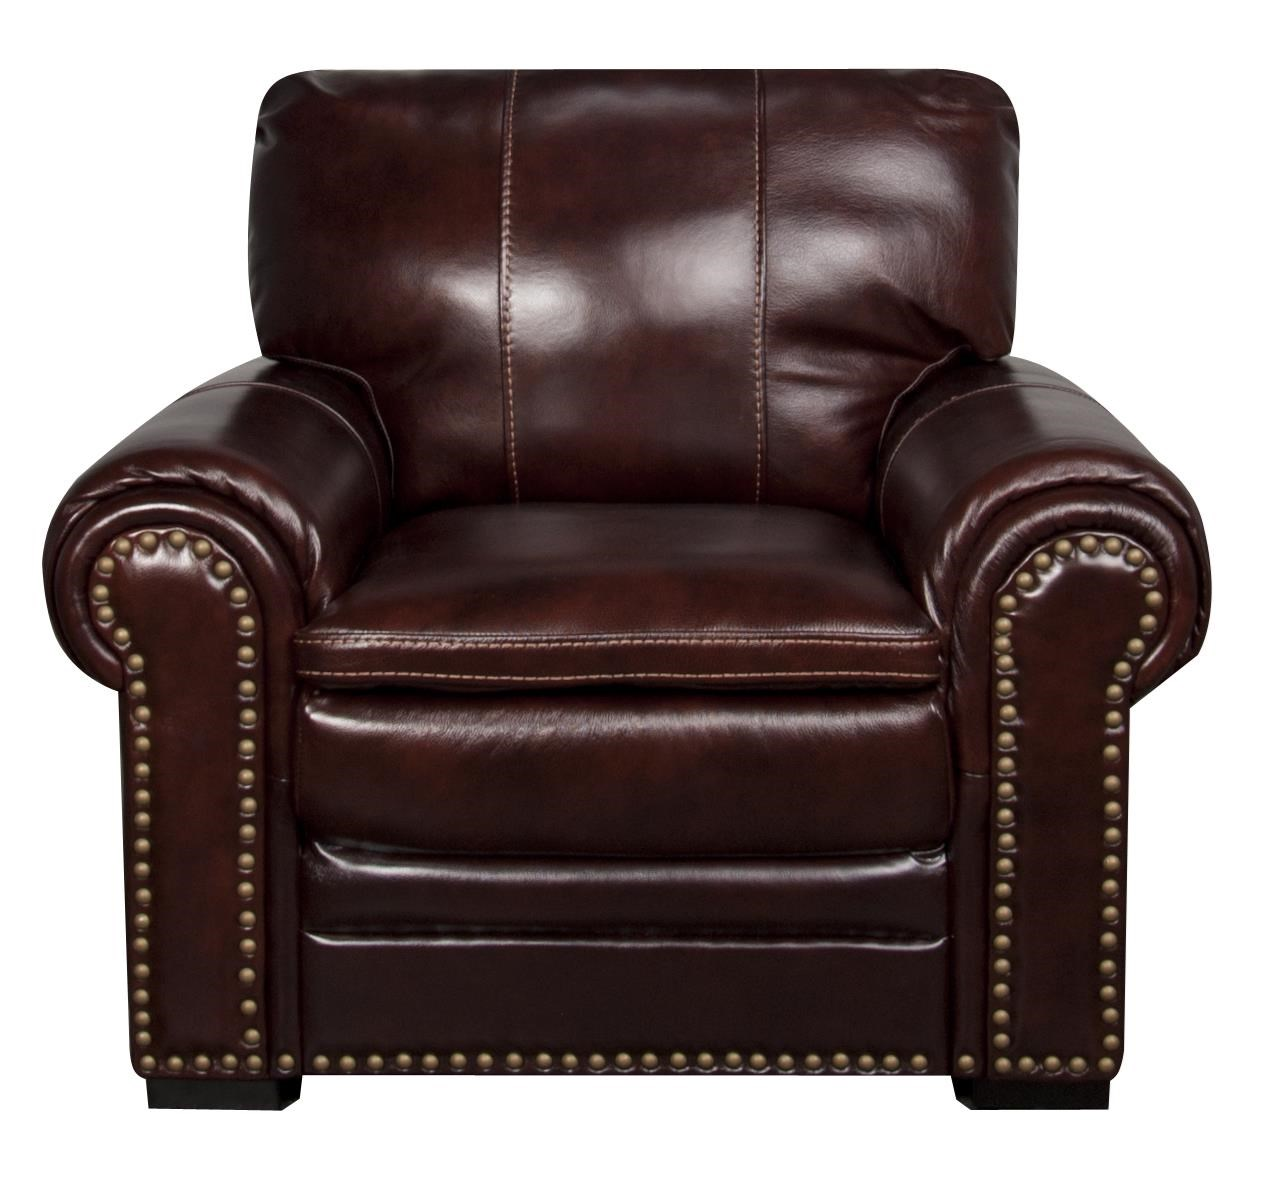 Morris Home Furnishings Elwood Elwood Leather-Match* Leather Chair - Item Number: 658300800